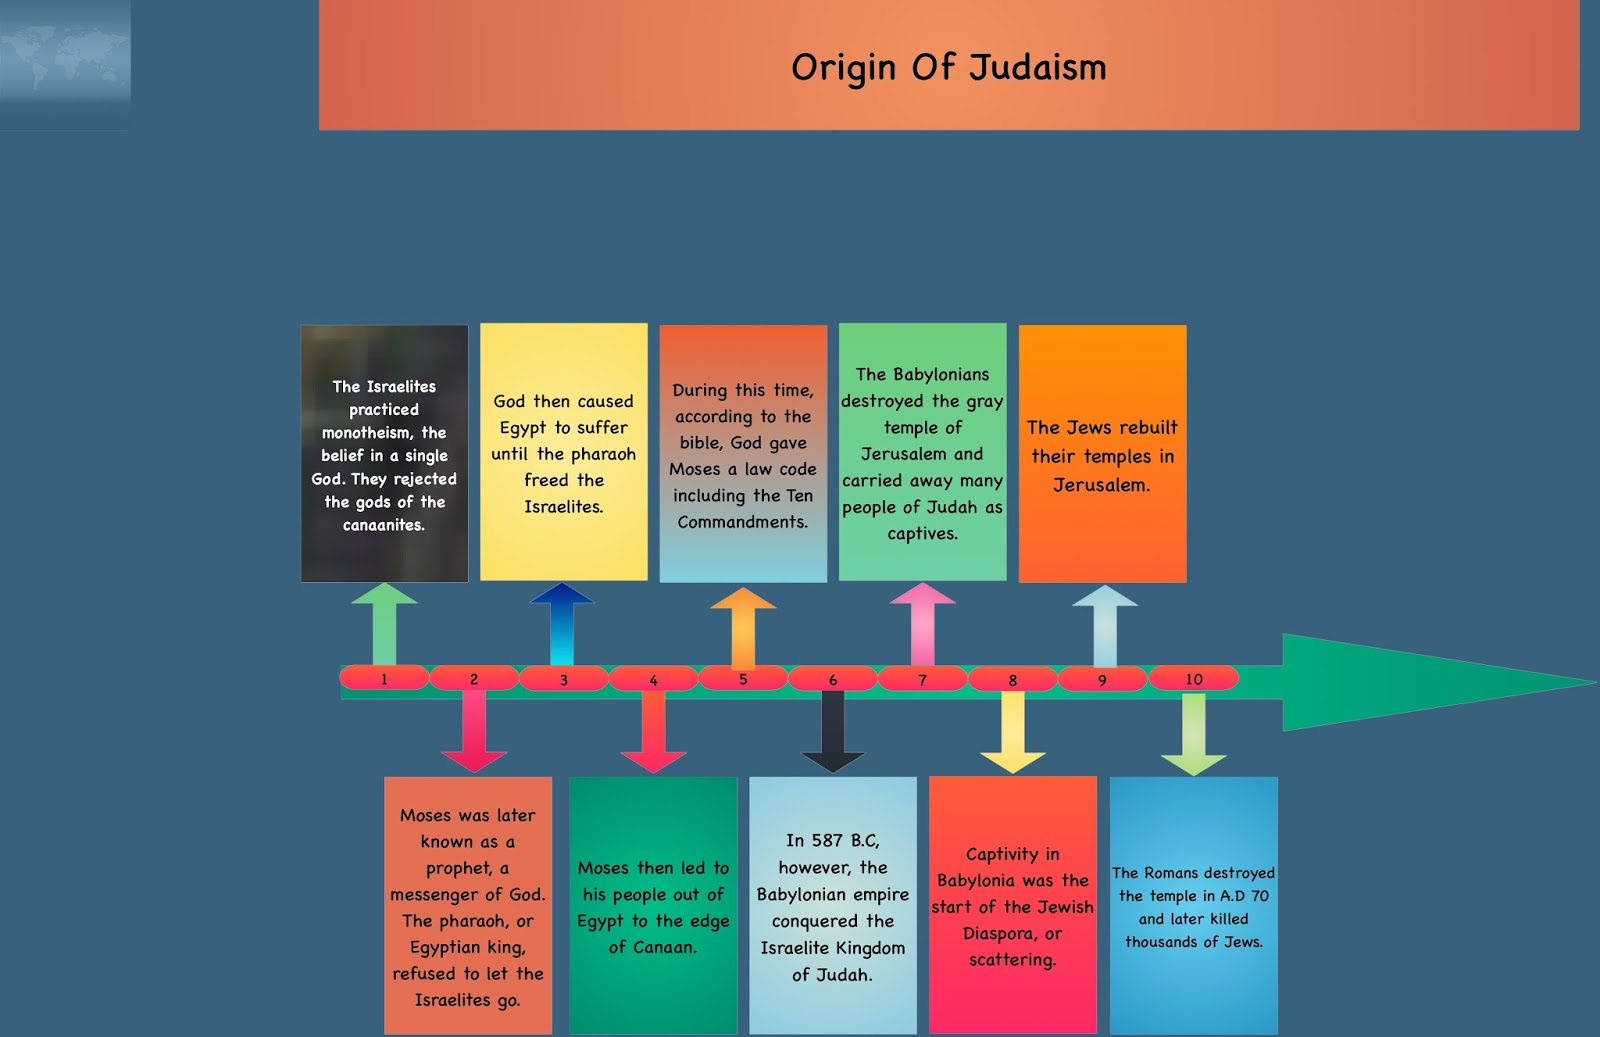 the origin and history of judaism The jewish nation began with a single couple judaism originates nearly 4,000 years ago in the middle east with a couple named abraham and sarah, whom g‑d selected to start a new people, the chosen nation.